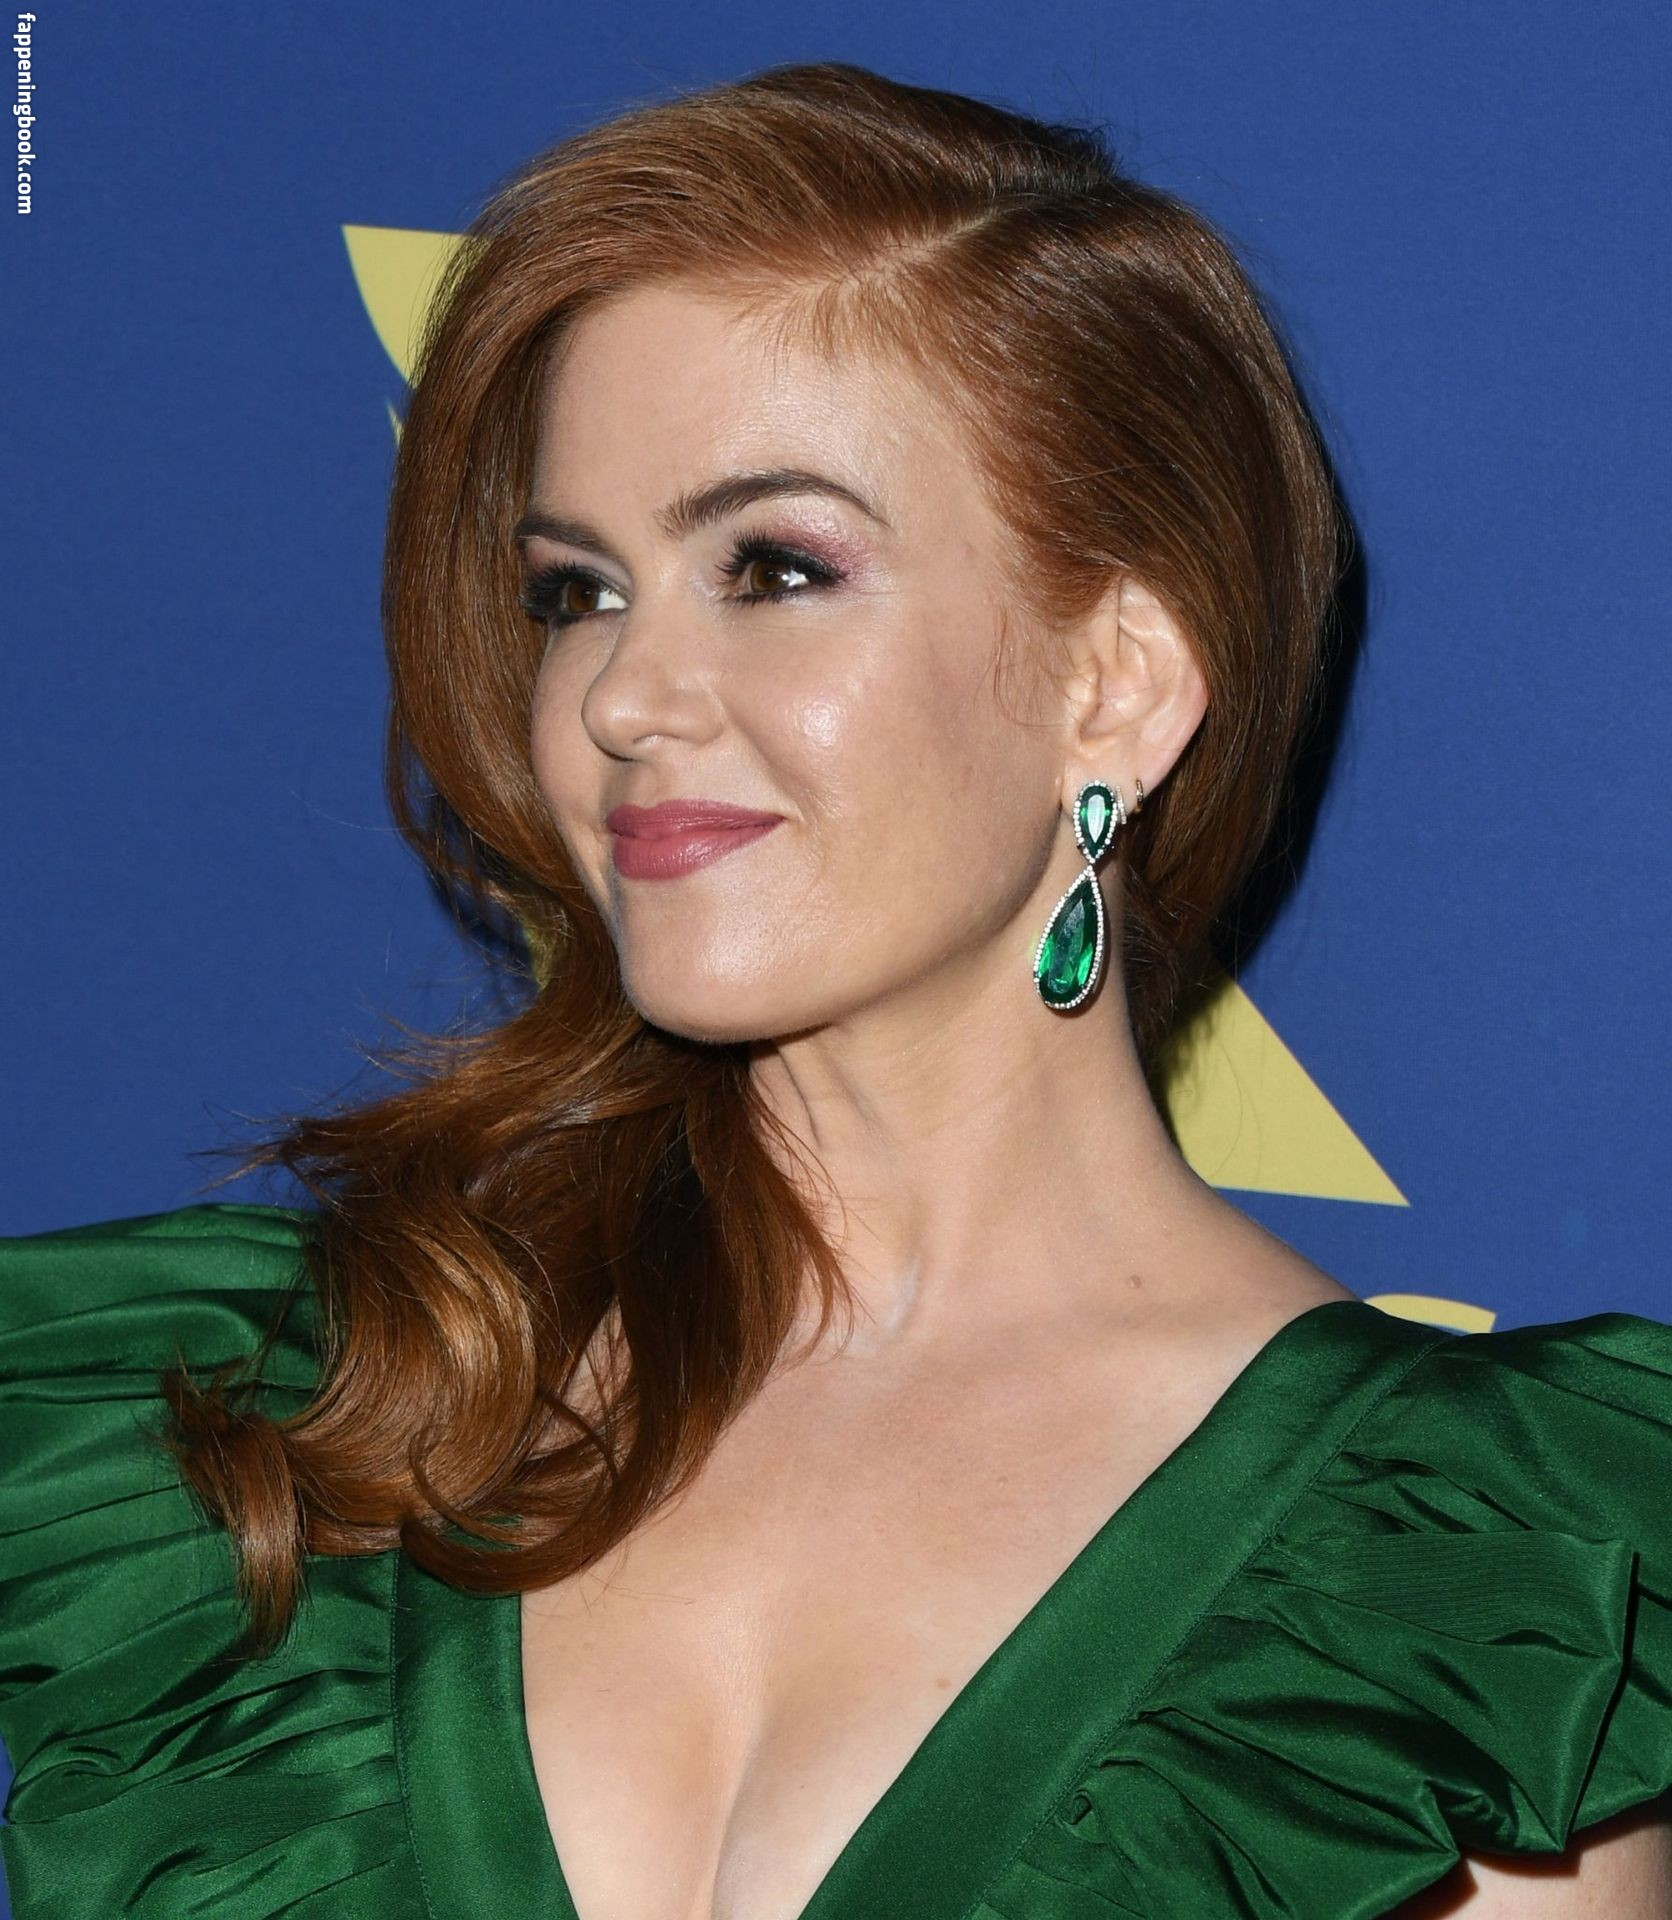 Isla Fisher Nude The Fappening - Page 5 - FappeningGram